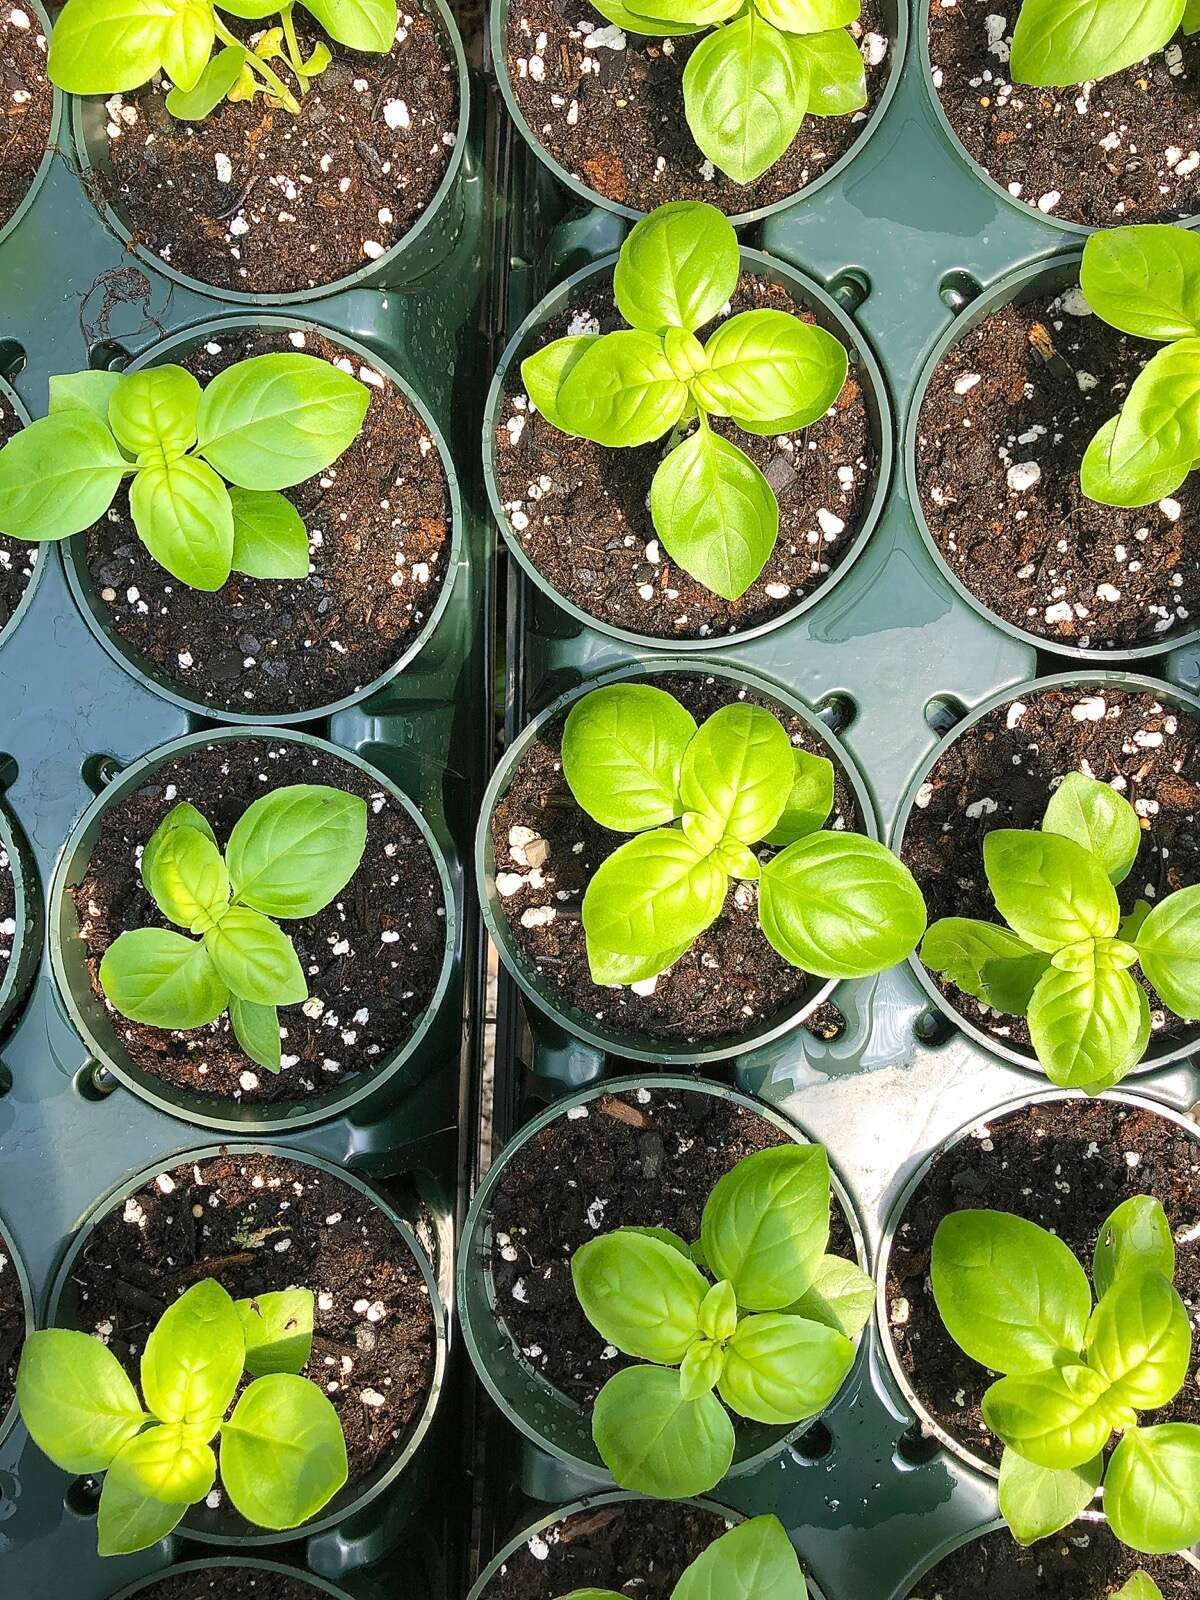 Basil seedlings in pots, ready to replant outdoors.